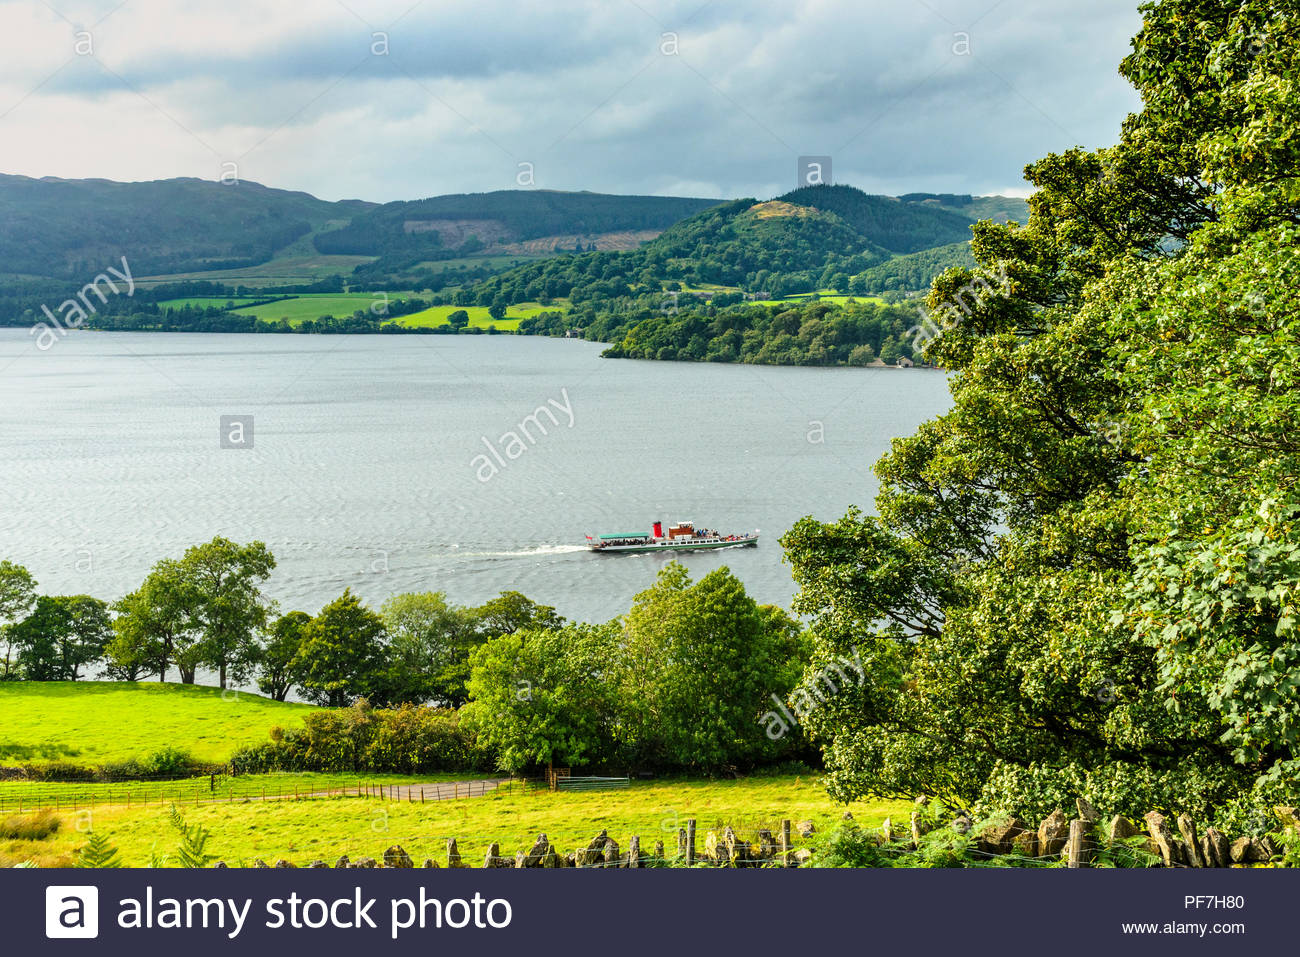 Steamer M.Y Lady of the Lake, believed to be the oldest working passenger vessel in the world, on Ullswater in the Lake District - Stock Image